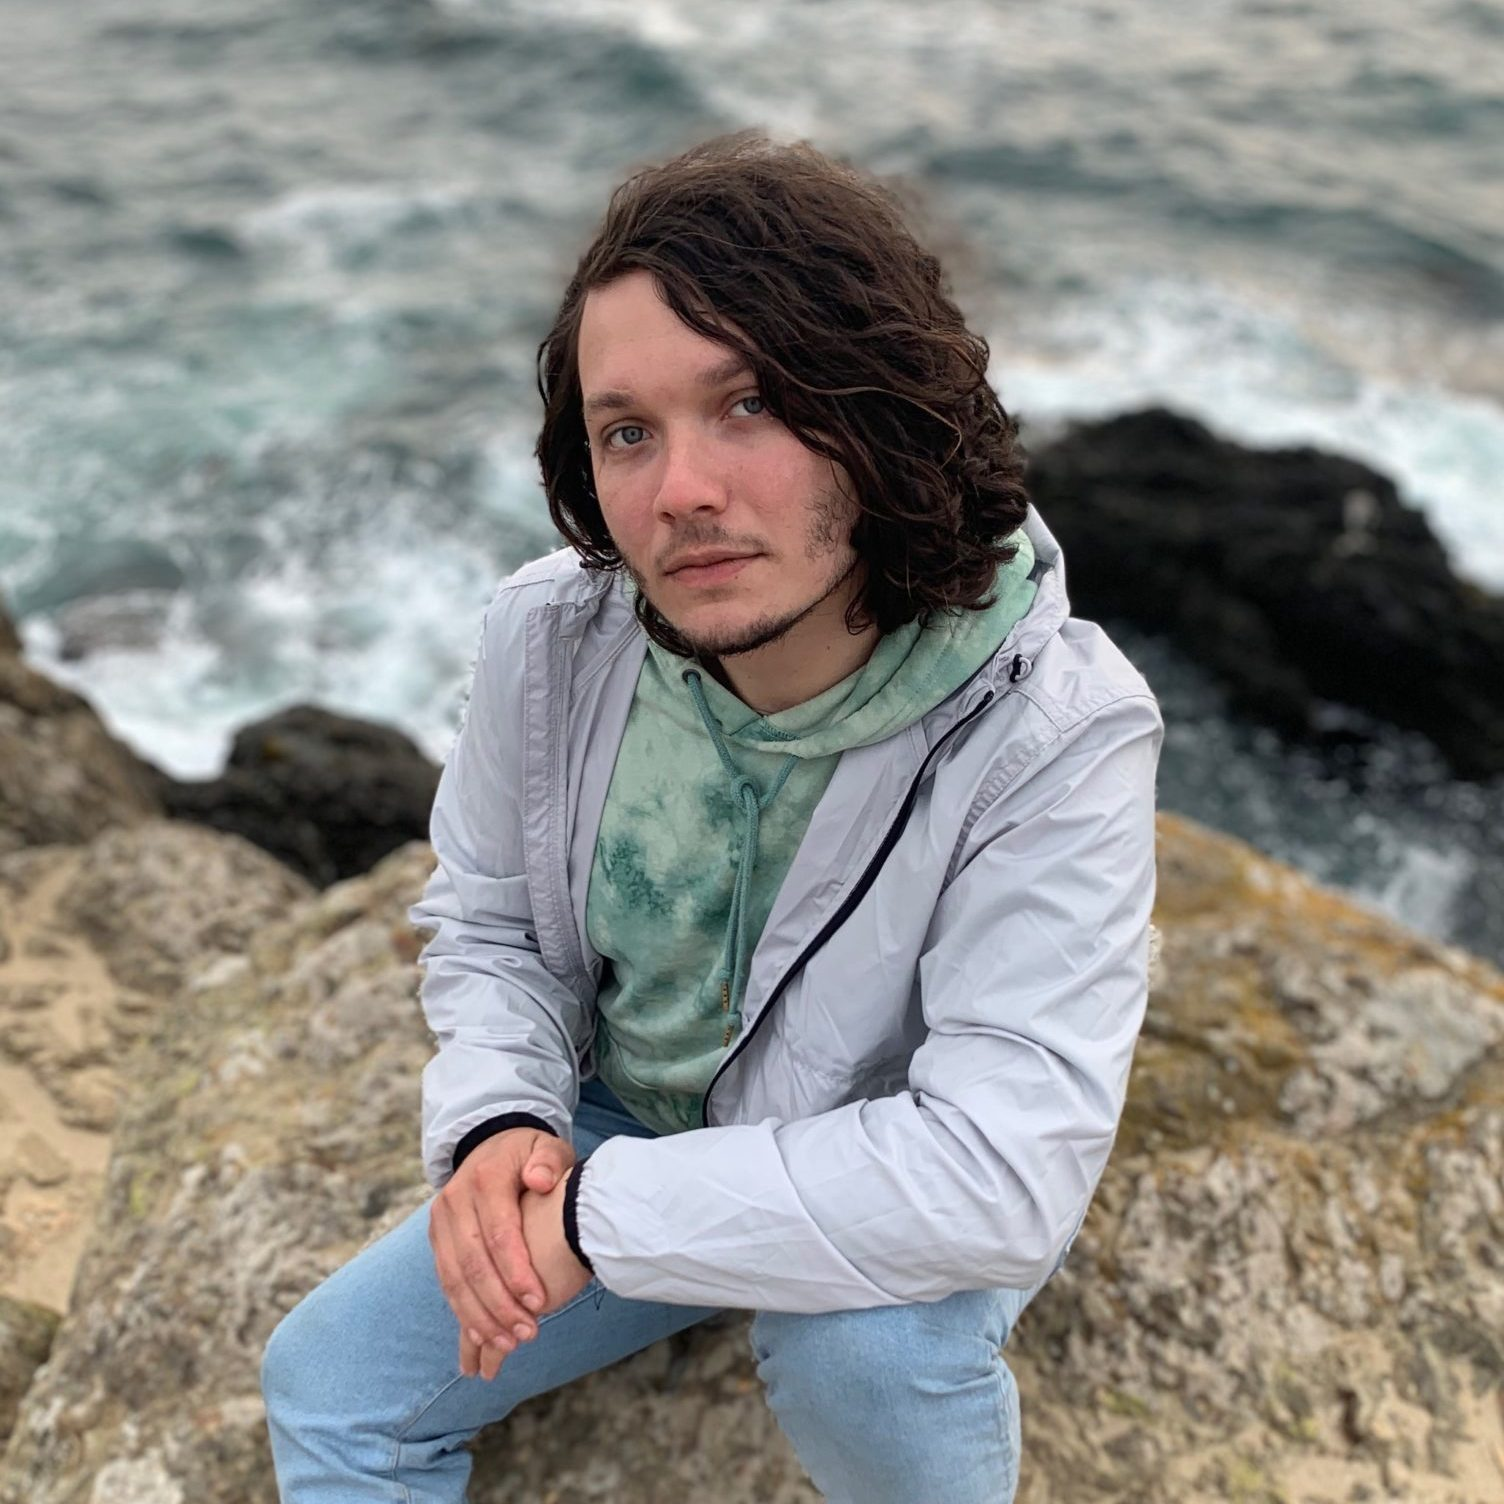 Jordan James Harvill is on a shore near the ocean. He is in his 30s, and has shoulder-length brown wavy hair and is wearing a green hood, a gray sweater, and blue jeans.